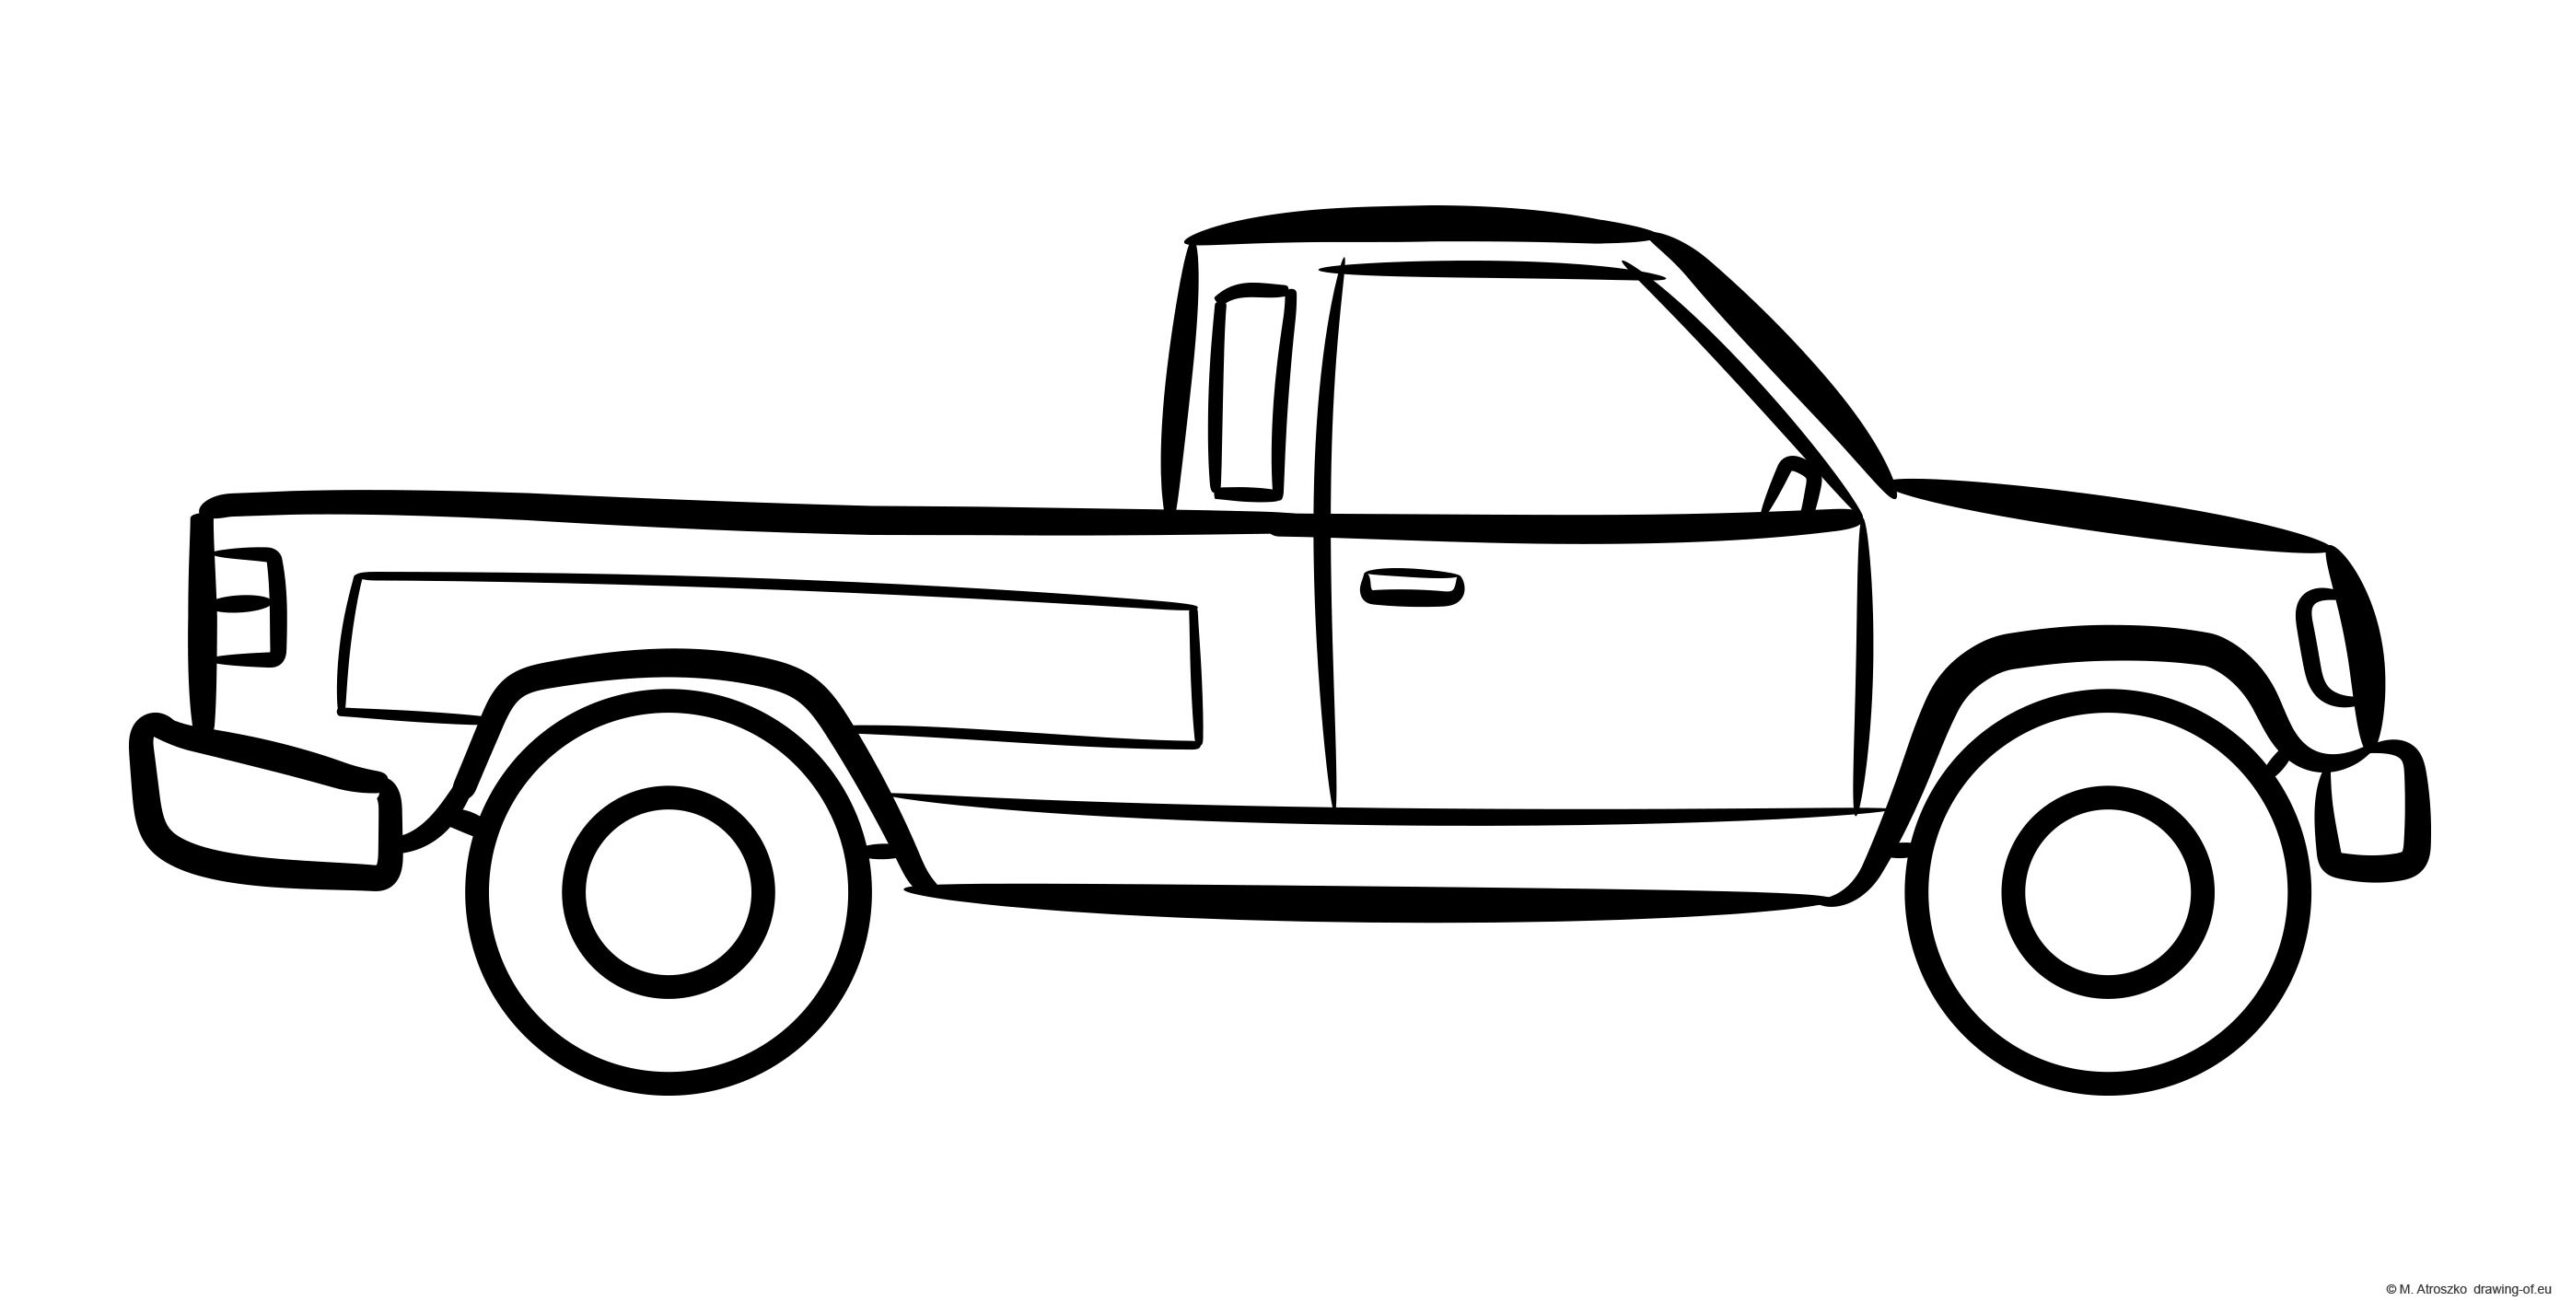 Drawing of a pickup truck